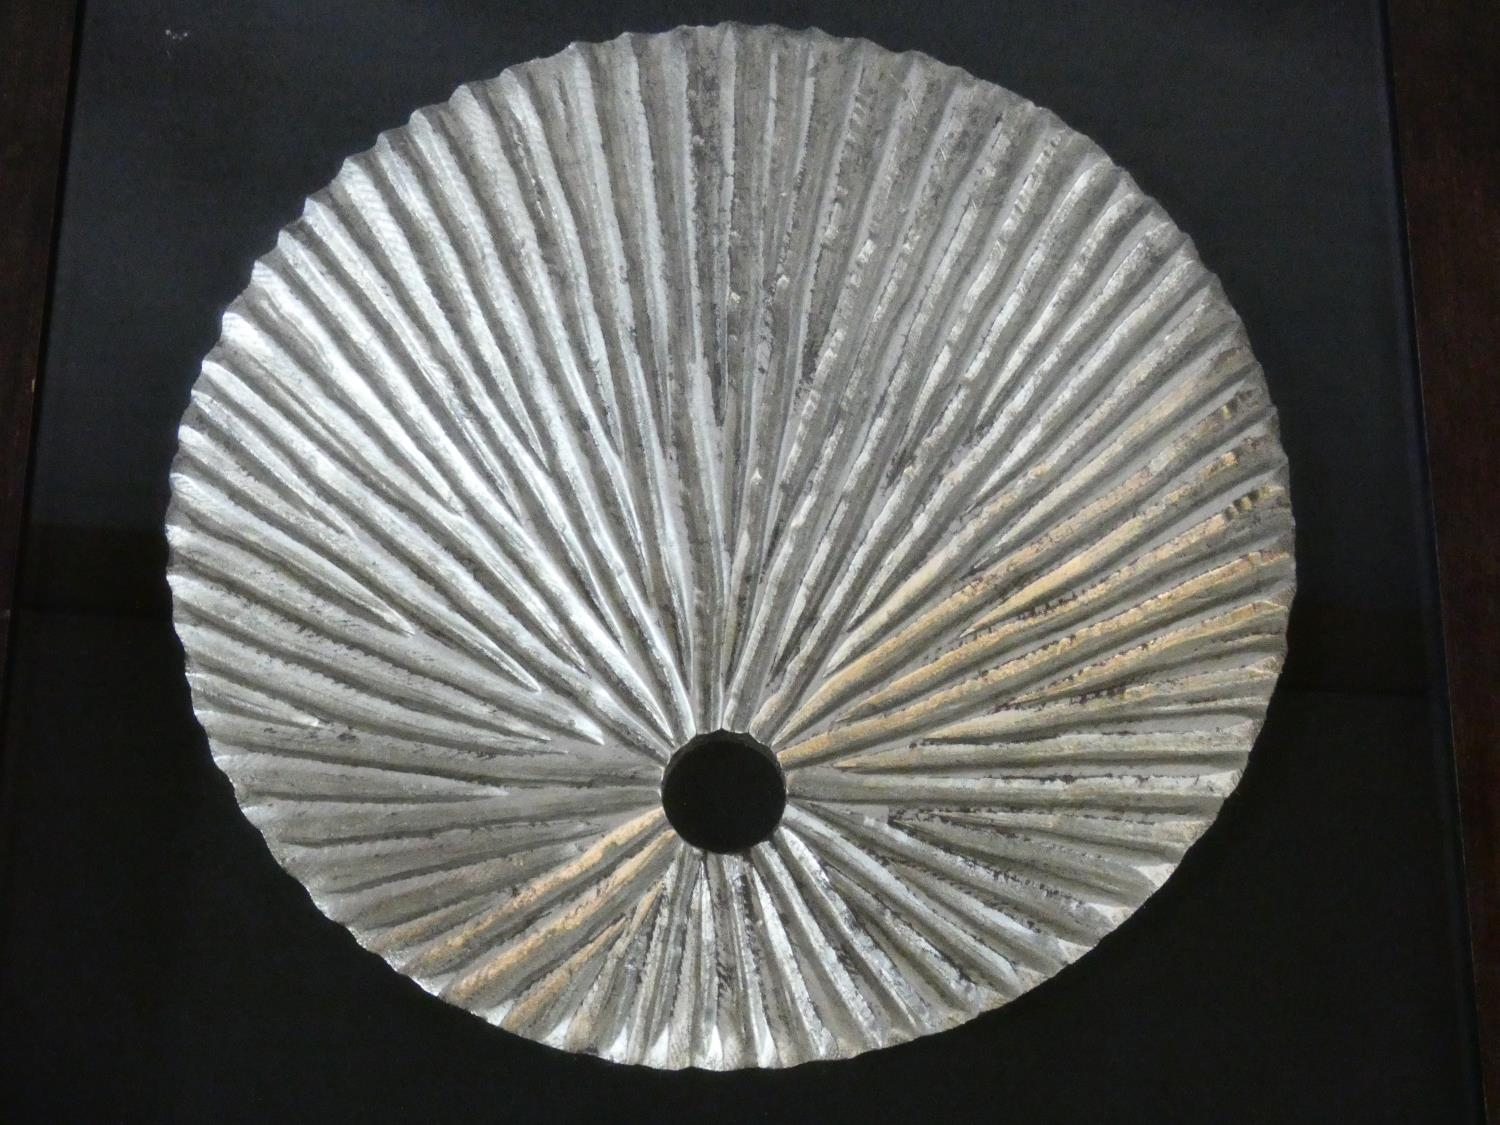 A contemporary carved wood textured silver disk, mounted on black, shadow box framed. H.80 W.80cm - Image 2 of 4